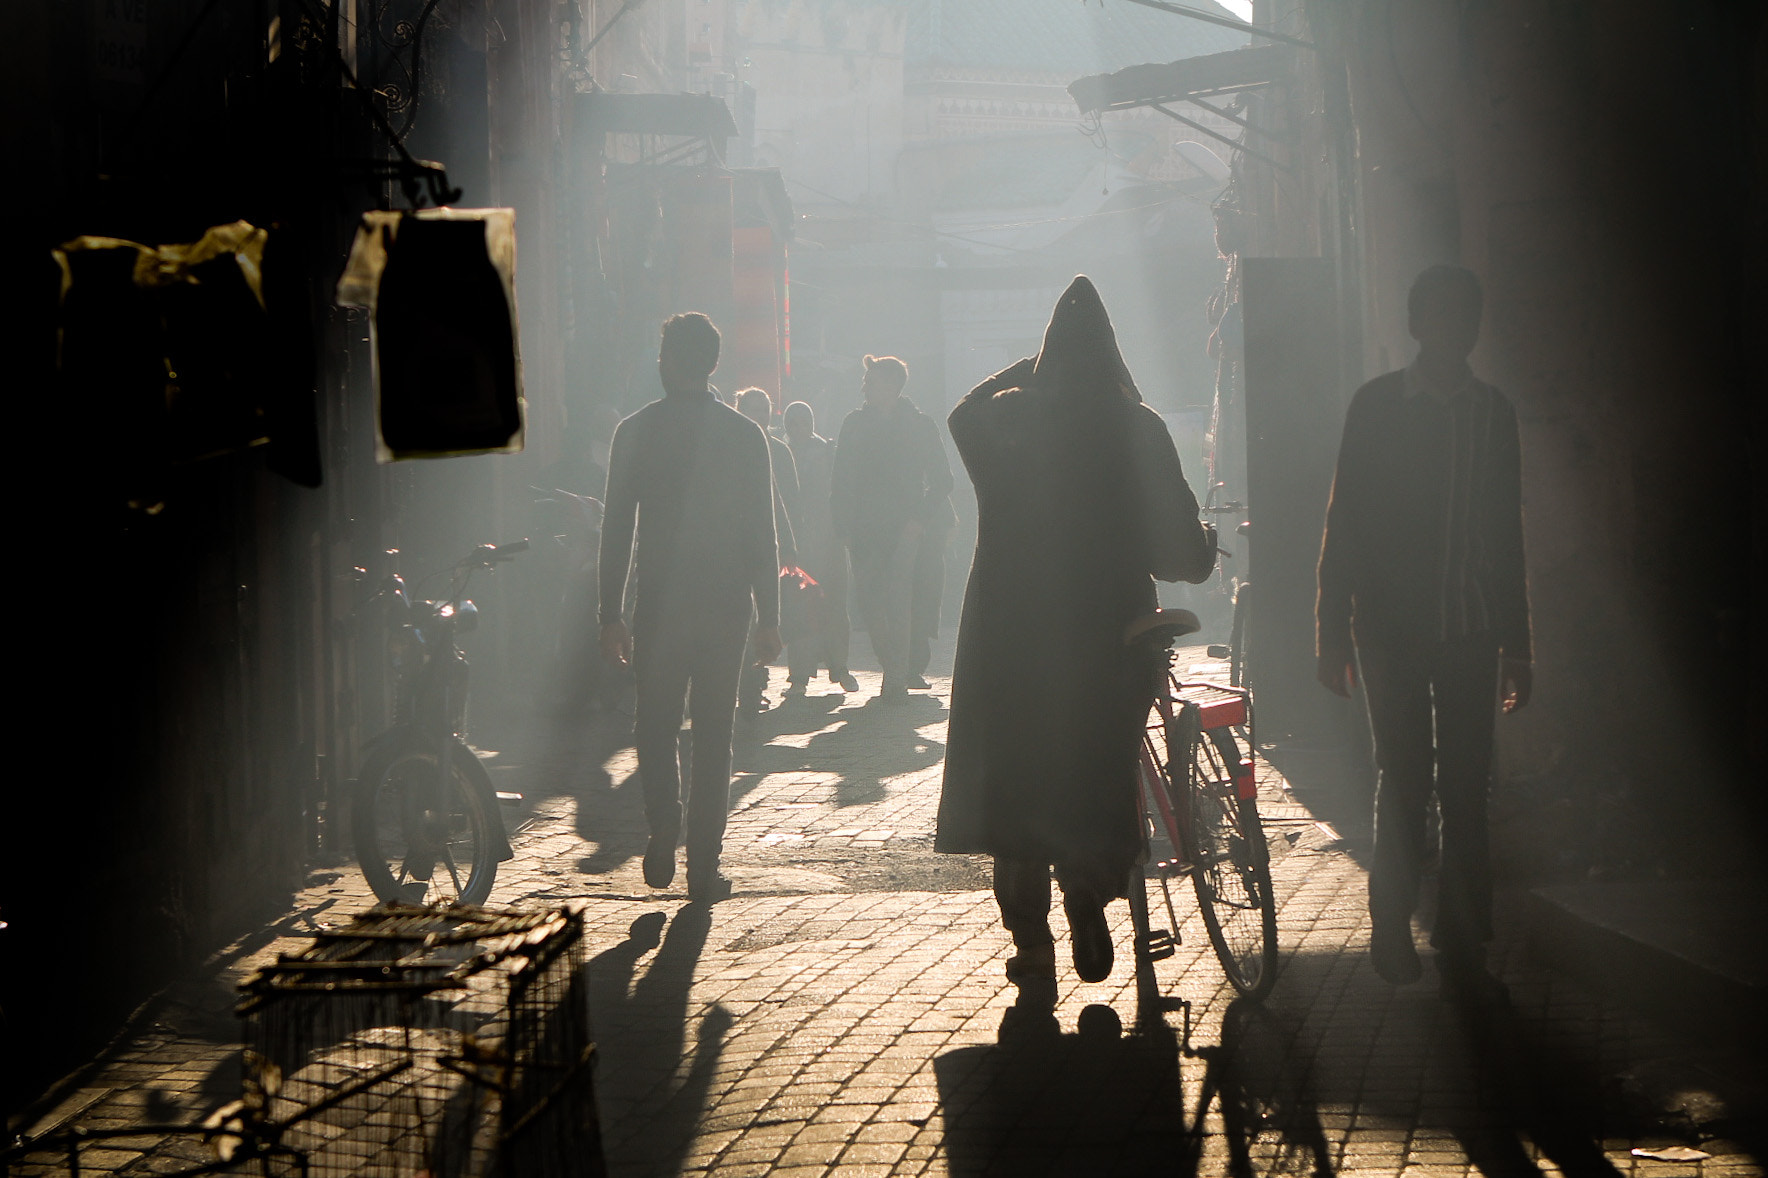 Photograph Marrakech life by Shannon Ley on 500px